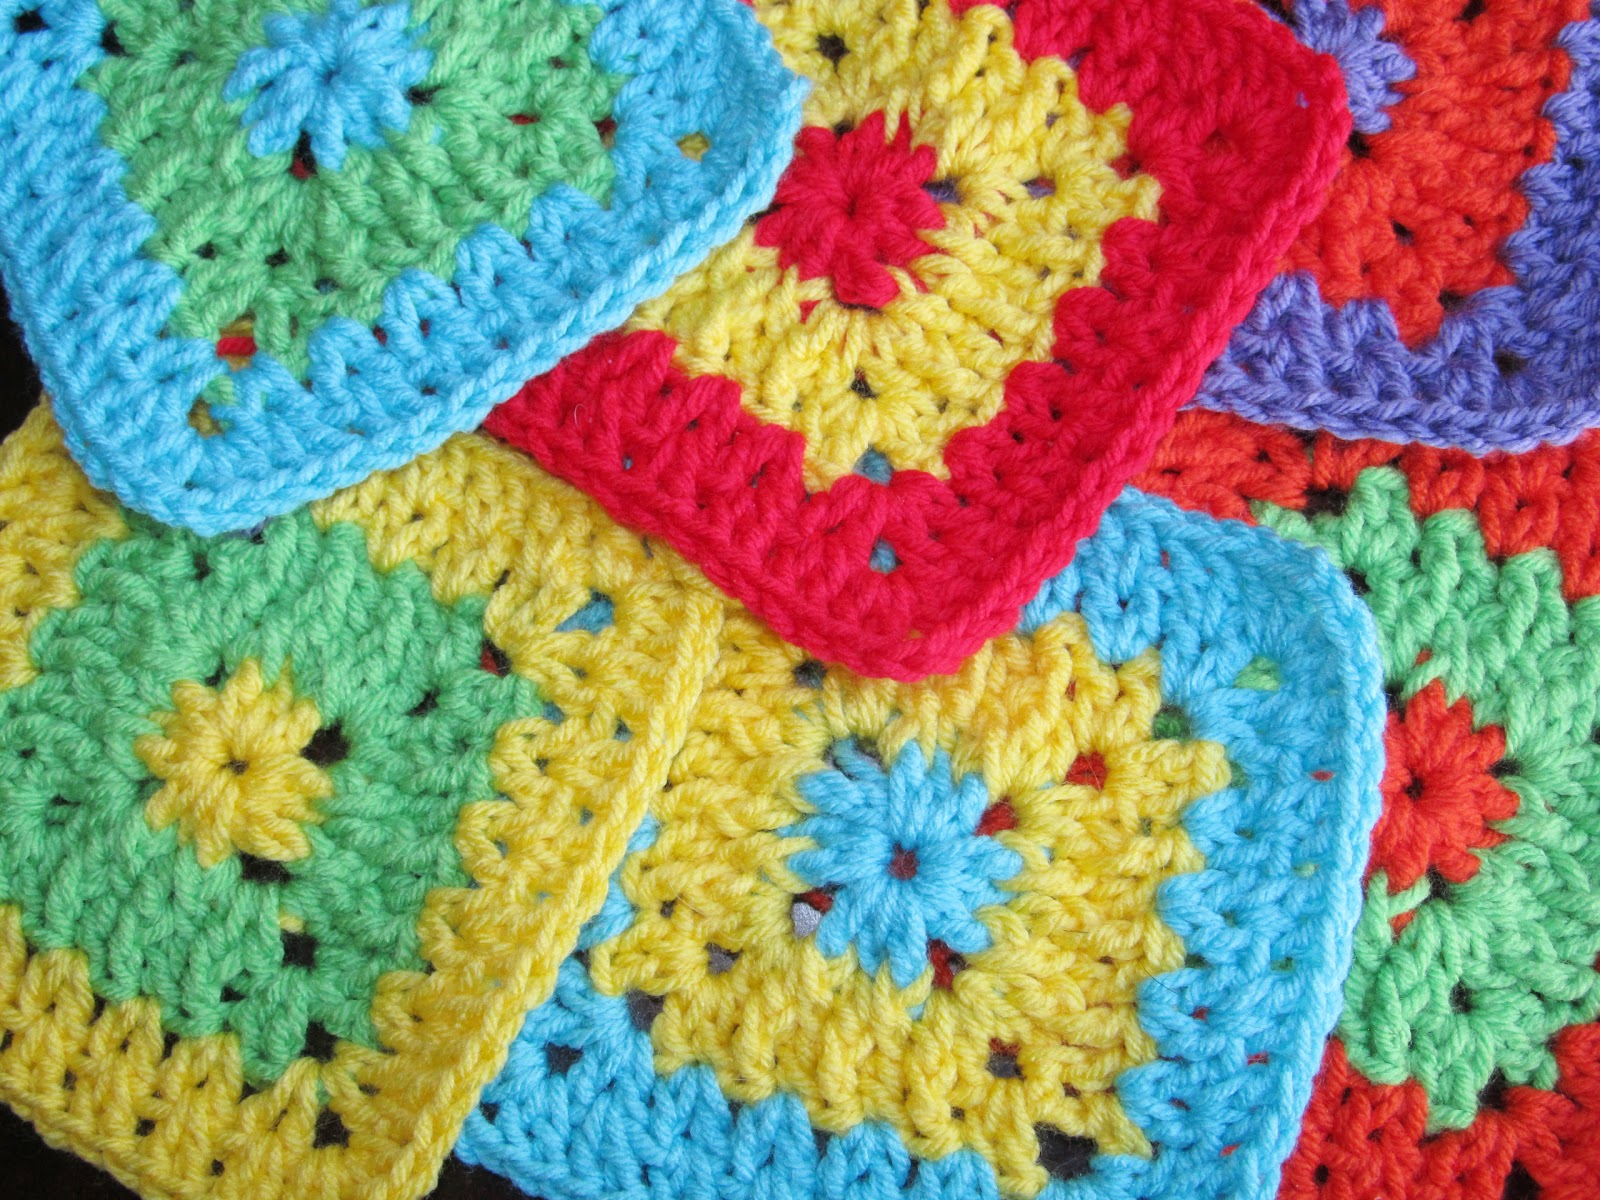 Free Crochet Granny Square Patterns For Beginners : SmoothFox Crochet and Knit: SmoothFox Cool 2B Square ...